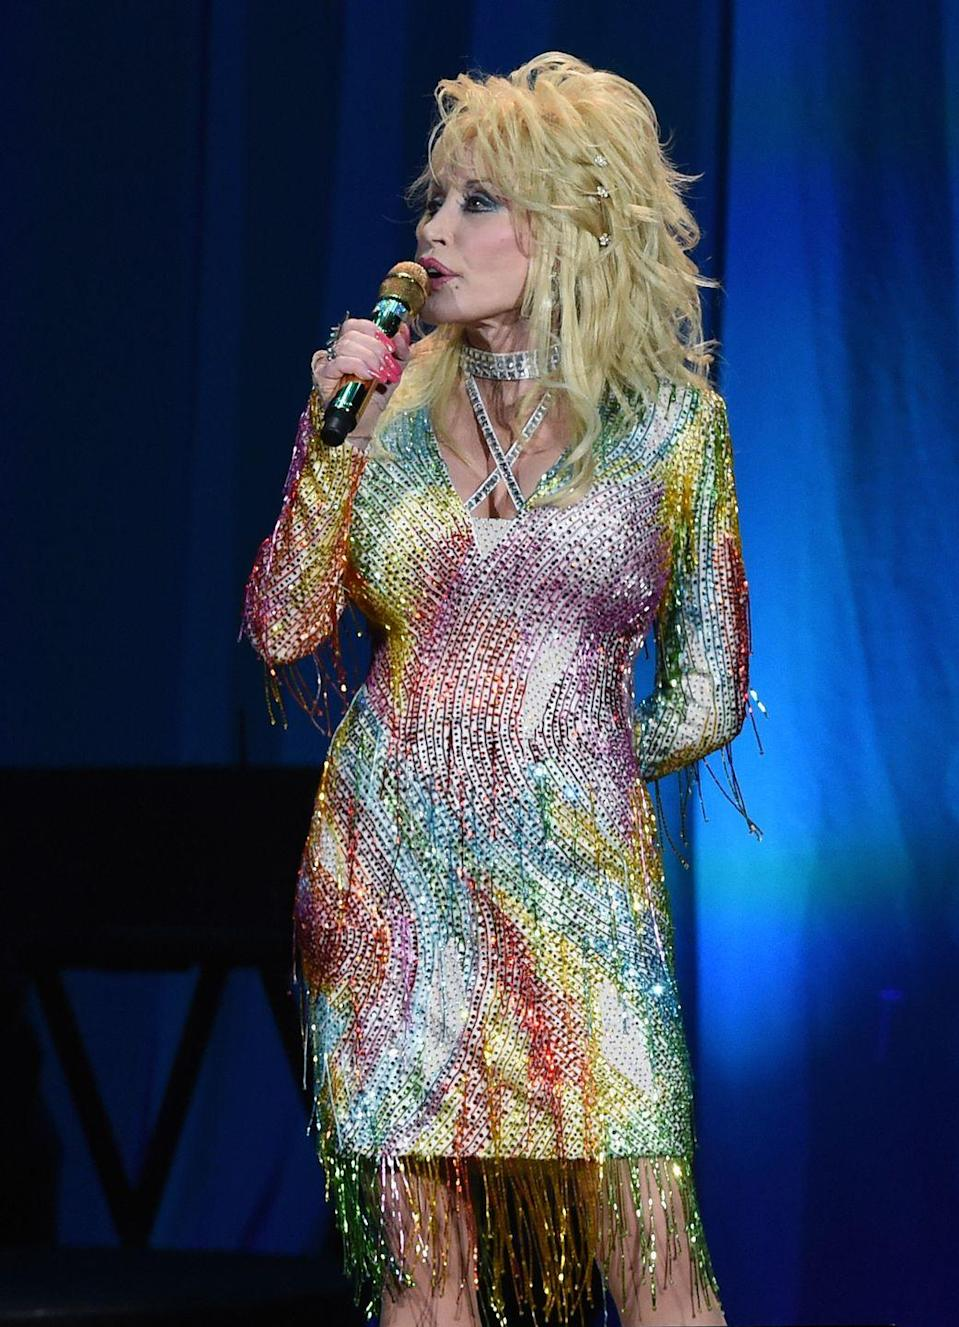 """<p>Here, Parton's dress pays homage to one of her most beloved songs, """"Coat of Many Colors,"""" inspired by her own childhood experience. This beaded rainbow overlay with rhinestones is Dolly at her finest. </p>"""